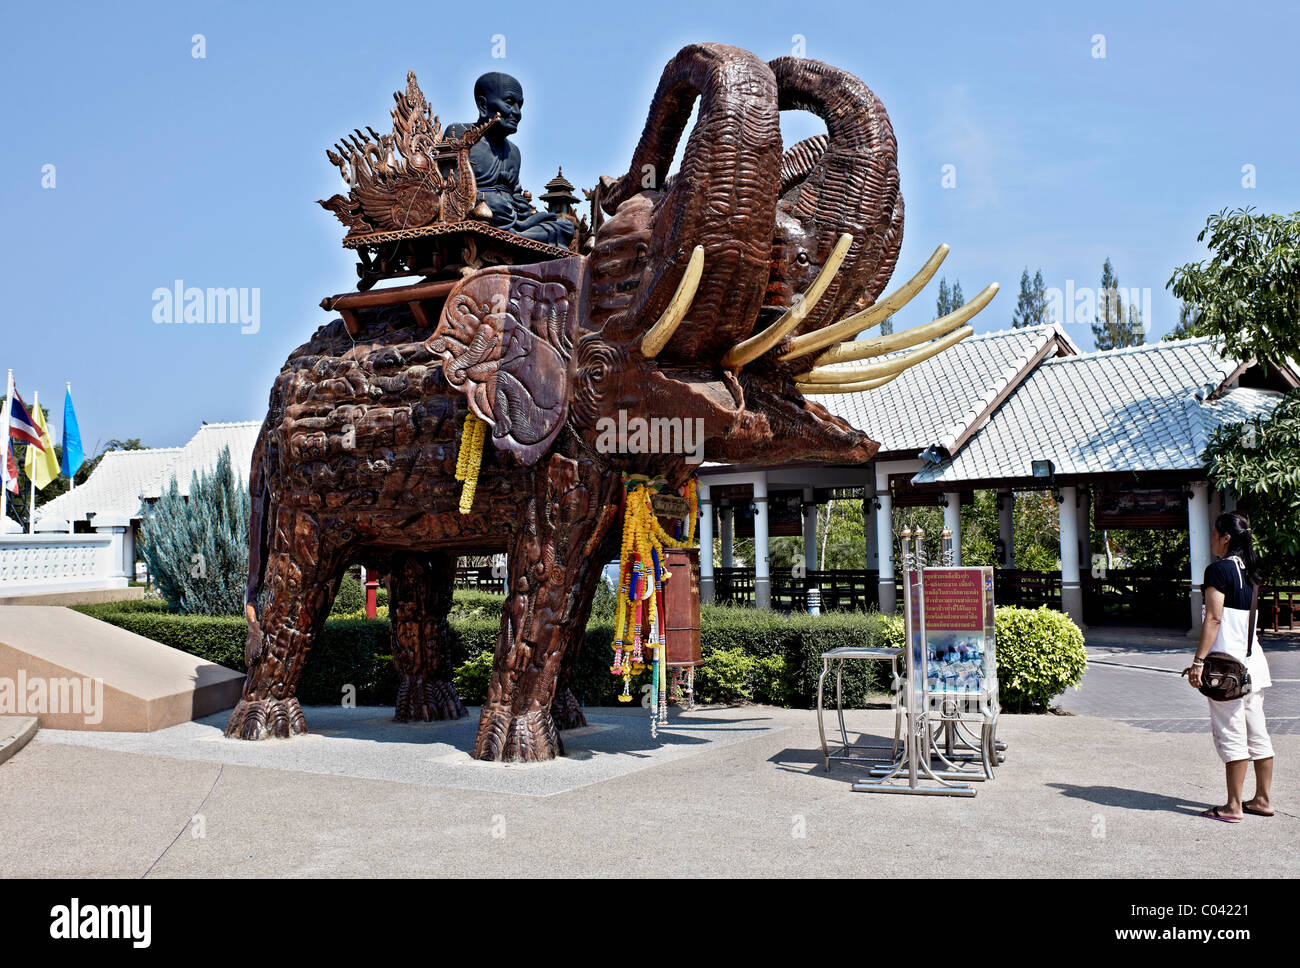 Statue of Thai revered monk Luang Pu Thuat Tuad astride a large wooden elephant Wat Huay Mongkol Hua Hin Thailand - Stock Image